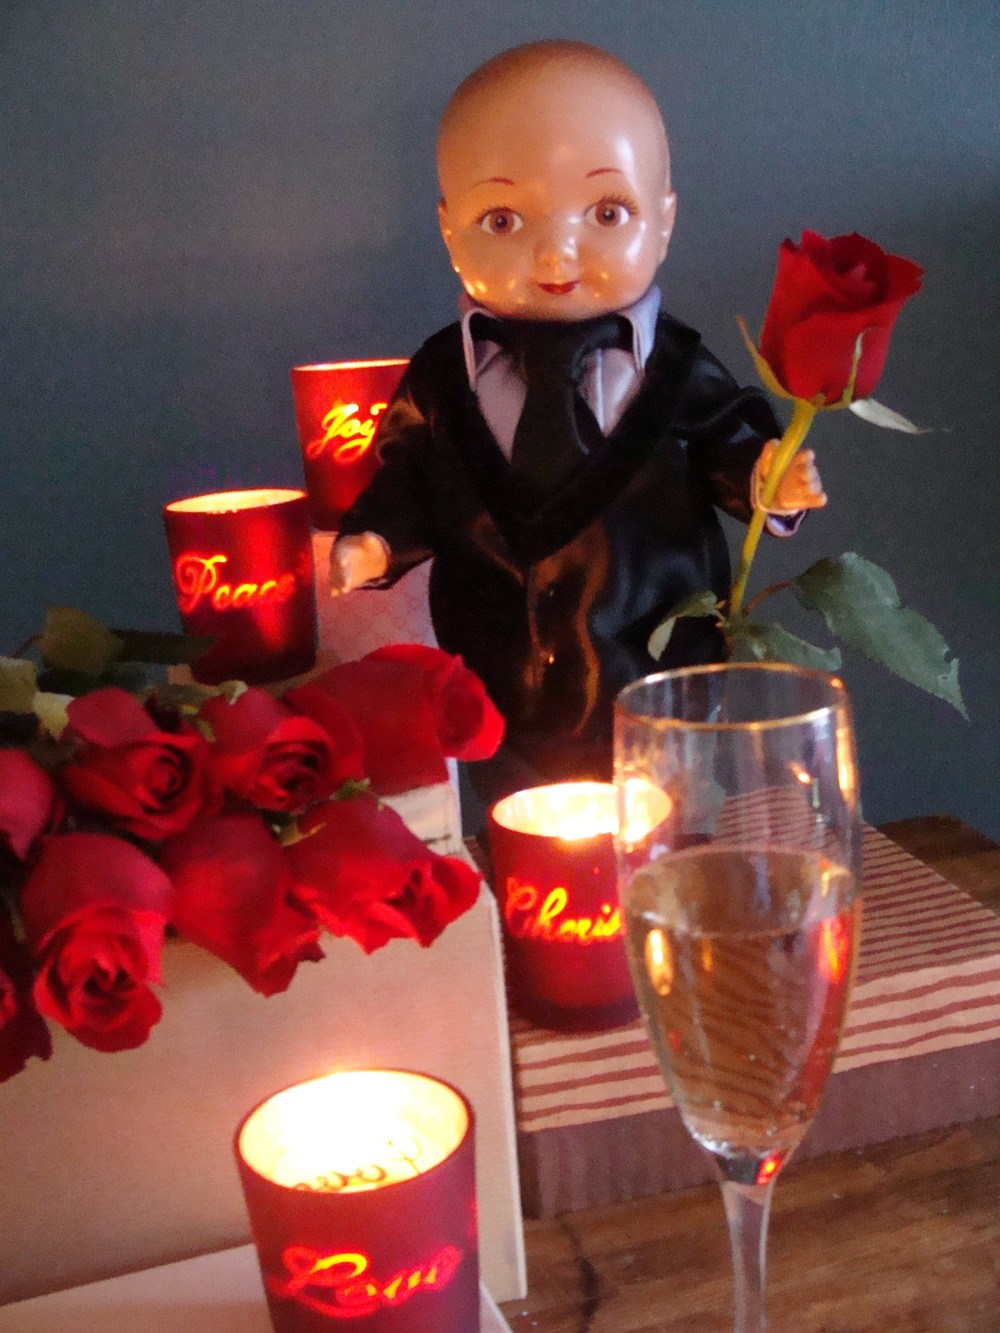 Buddy Ian as The Bachelor